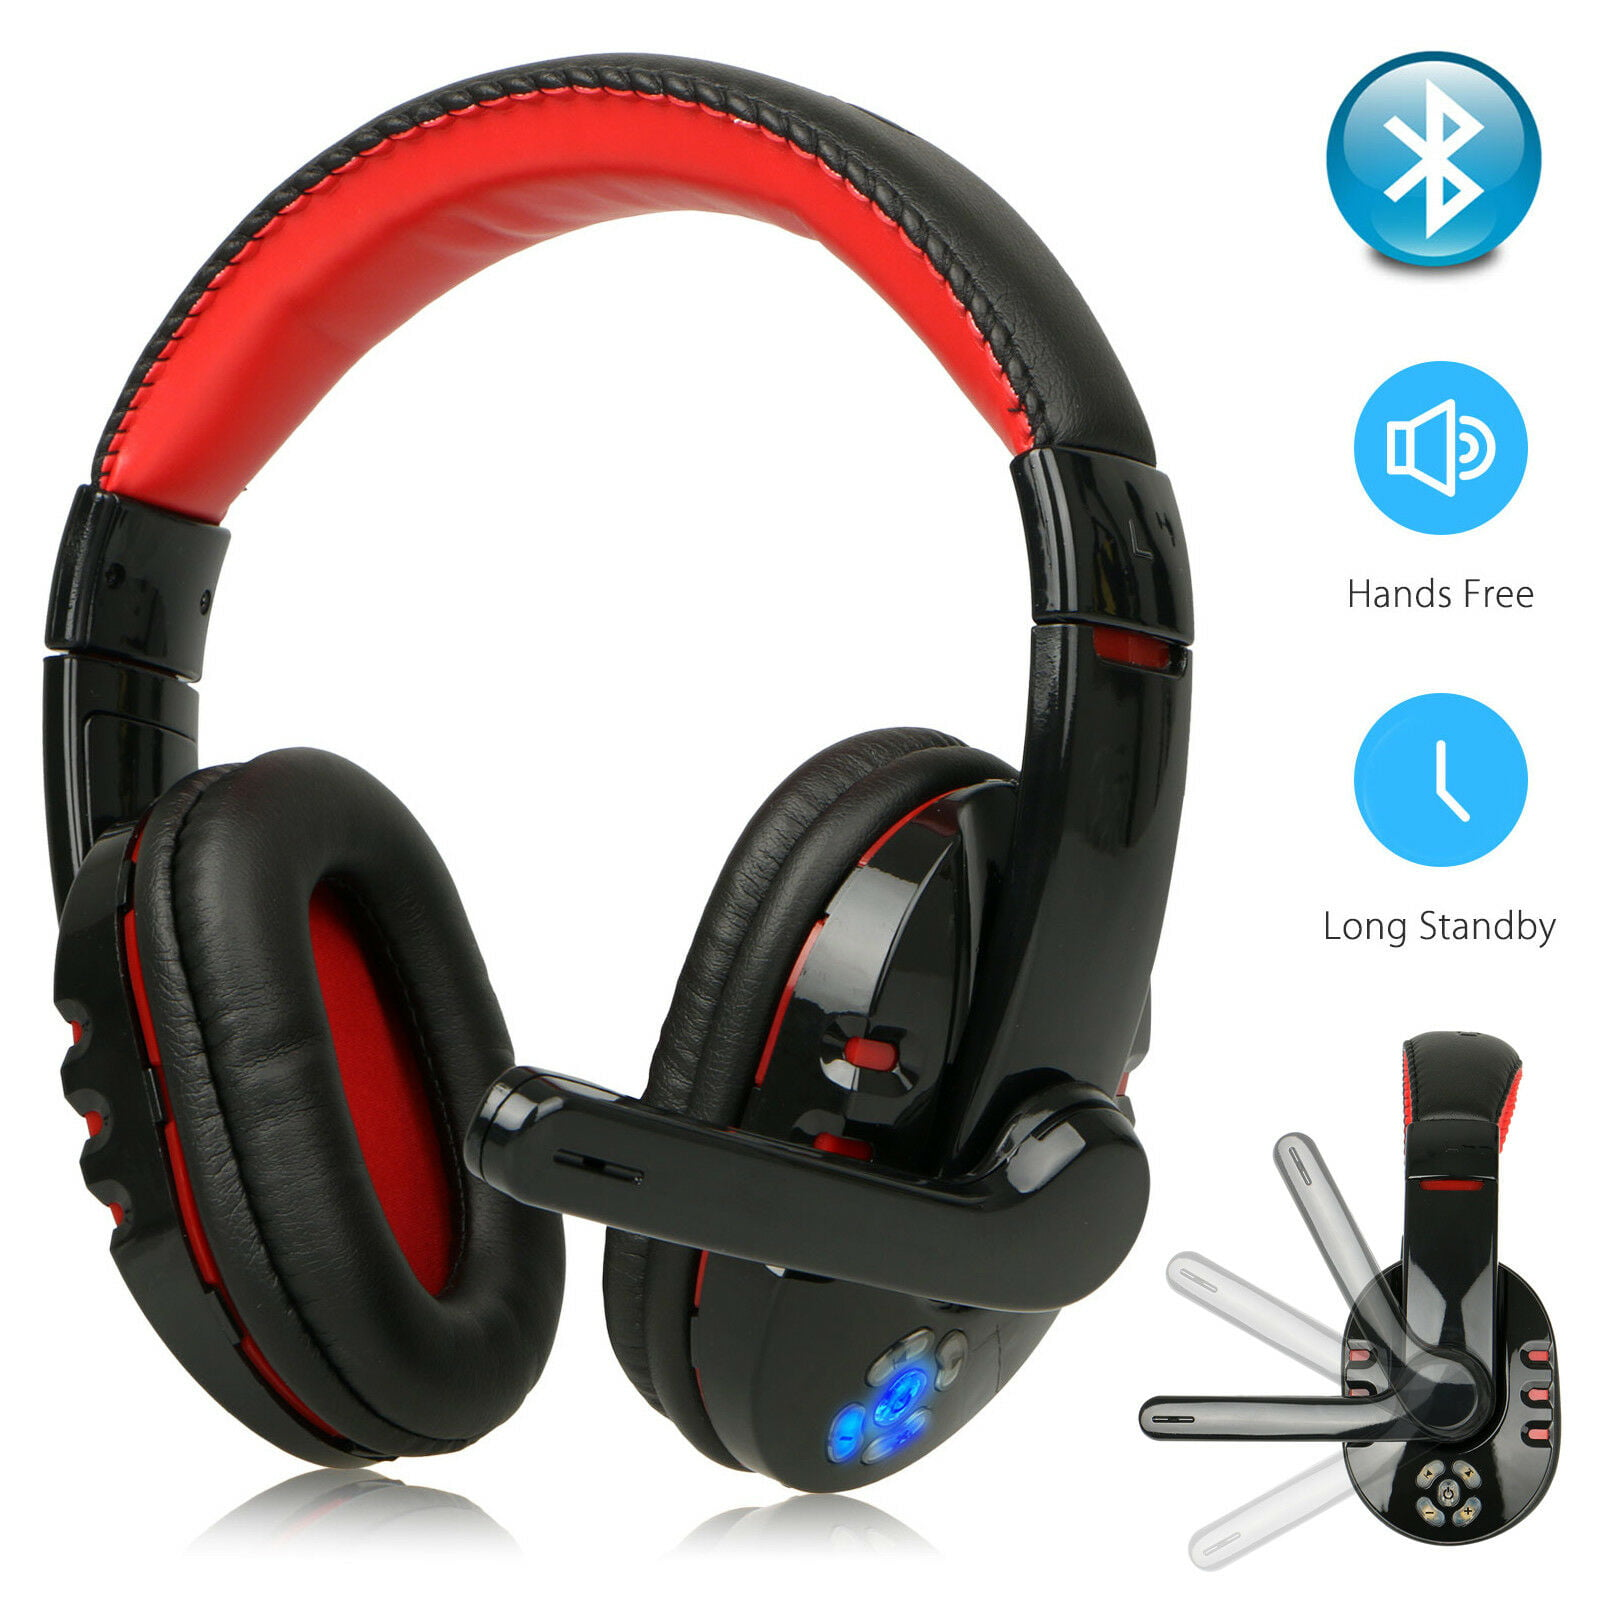 Bluetooth Wireless Gaming Headset For Xbox Pc Ps4 With Mic Led Volume Control Walmart Com Walmart Com